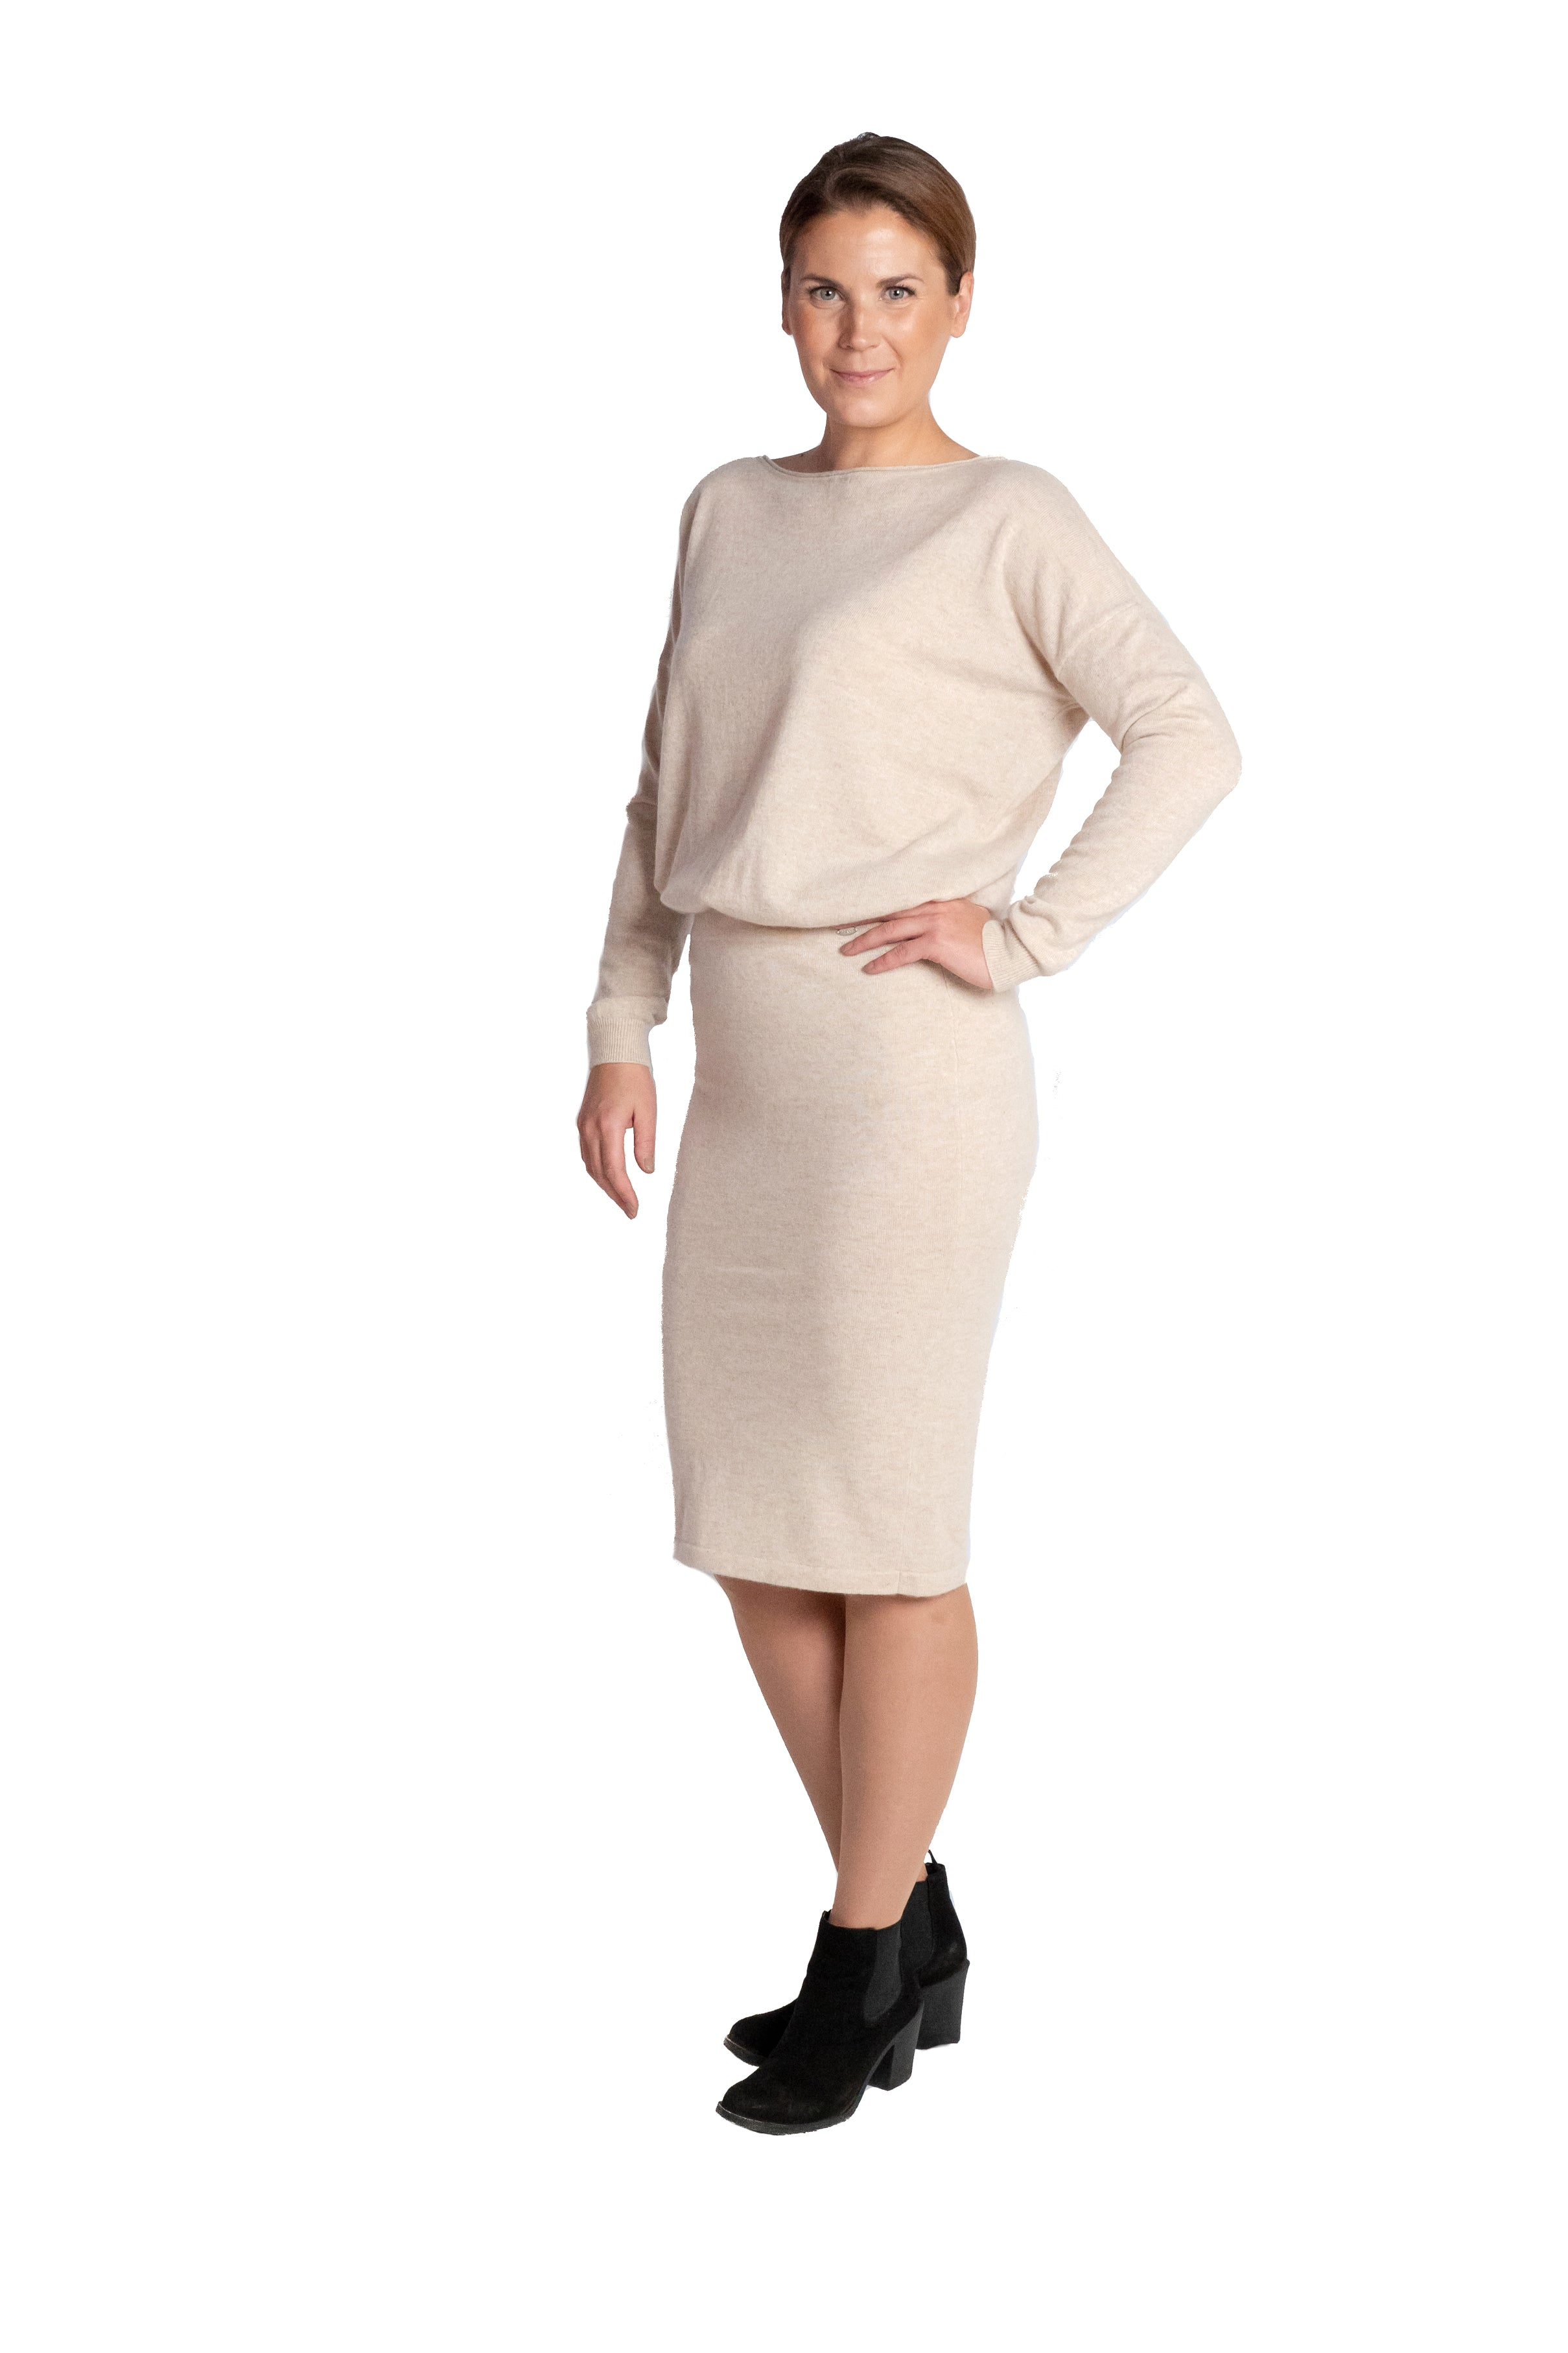 Inari Women's beige cashmere skirt - front side - 100% high-quality cashmere - Inari-clothing.fi